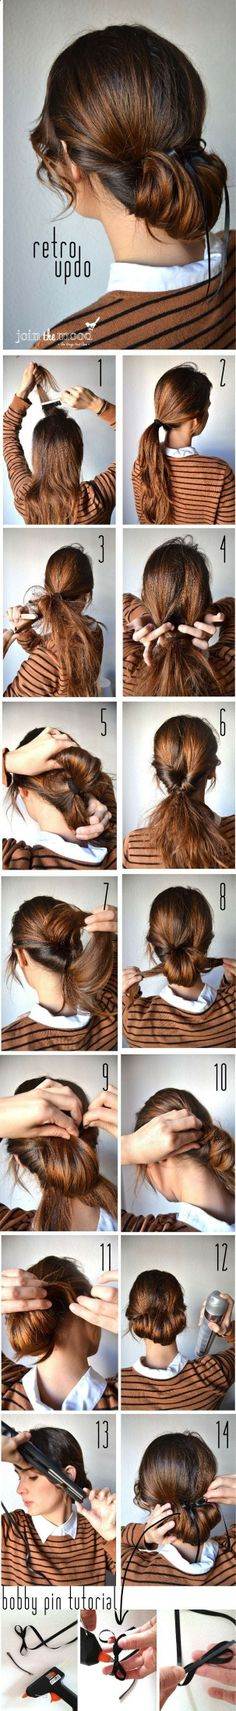 Retro Updos Tutorial: Step by Step Hairstyles for Long Hair - this bun looks so much easier that the others Ive seen